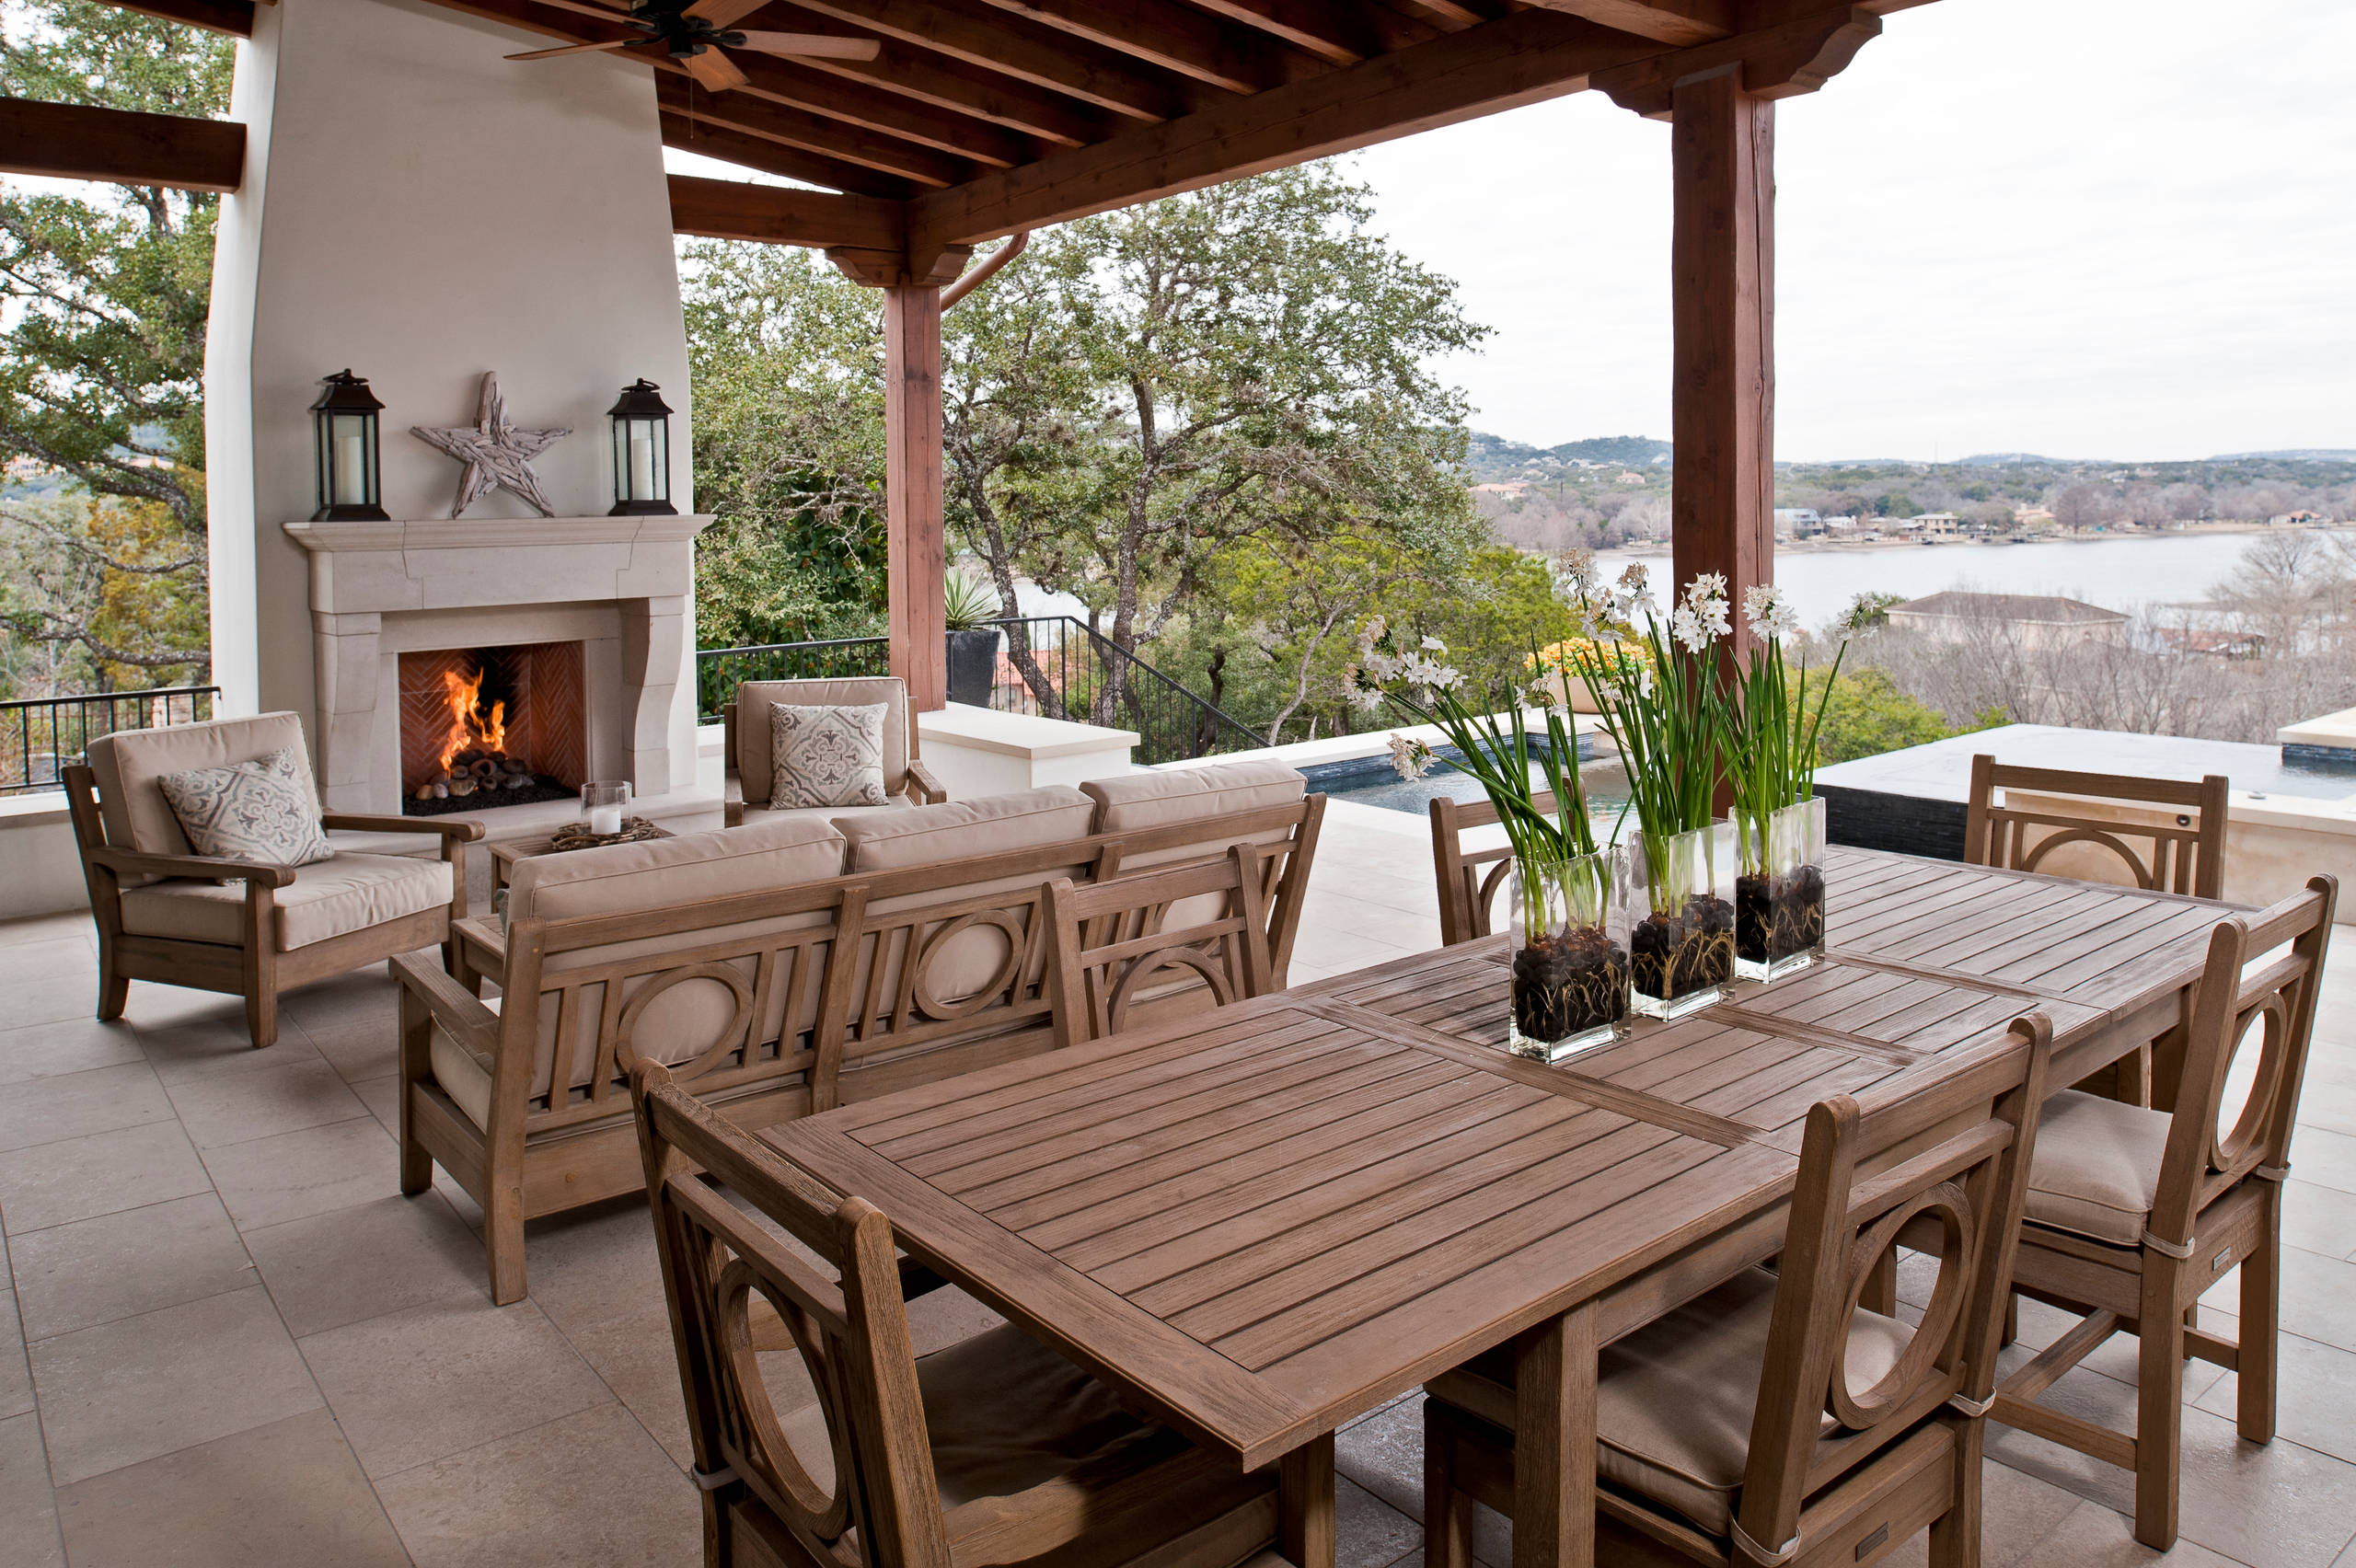 20 Stunning Mediterranean Porch Designs You Ll Fall In Love With